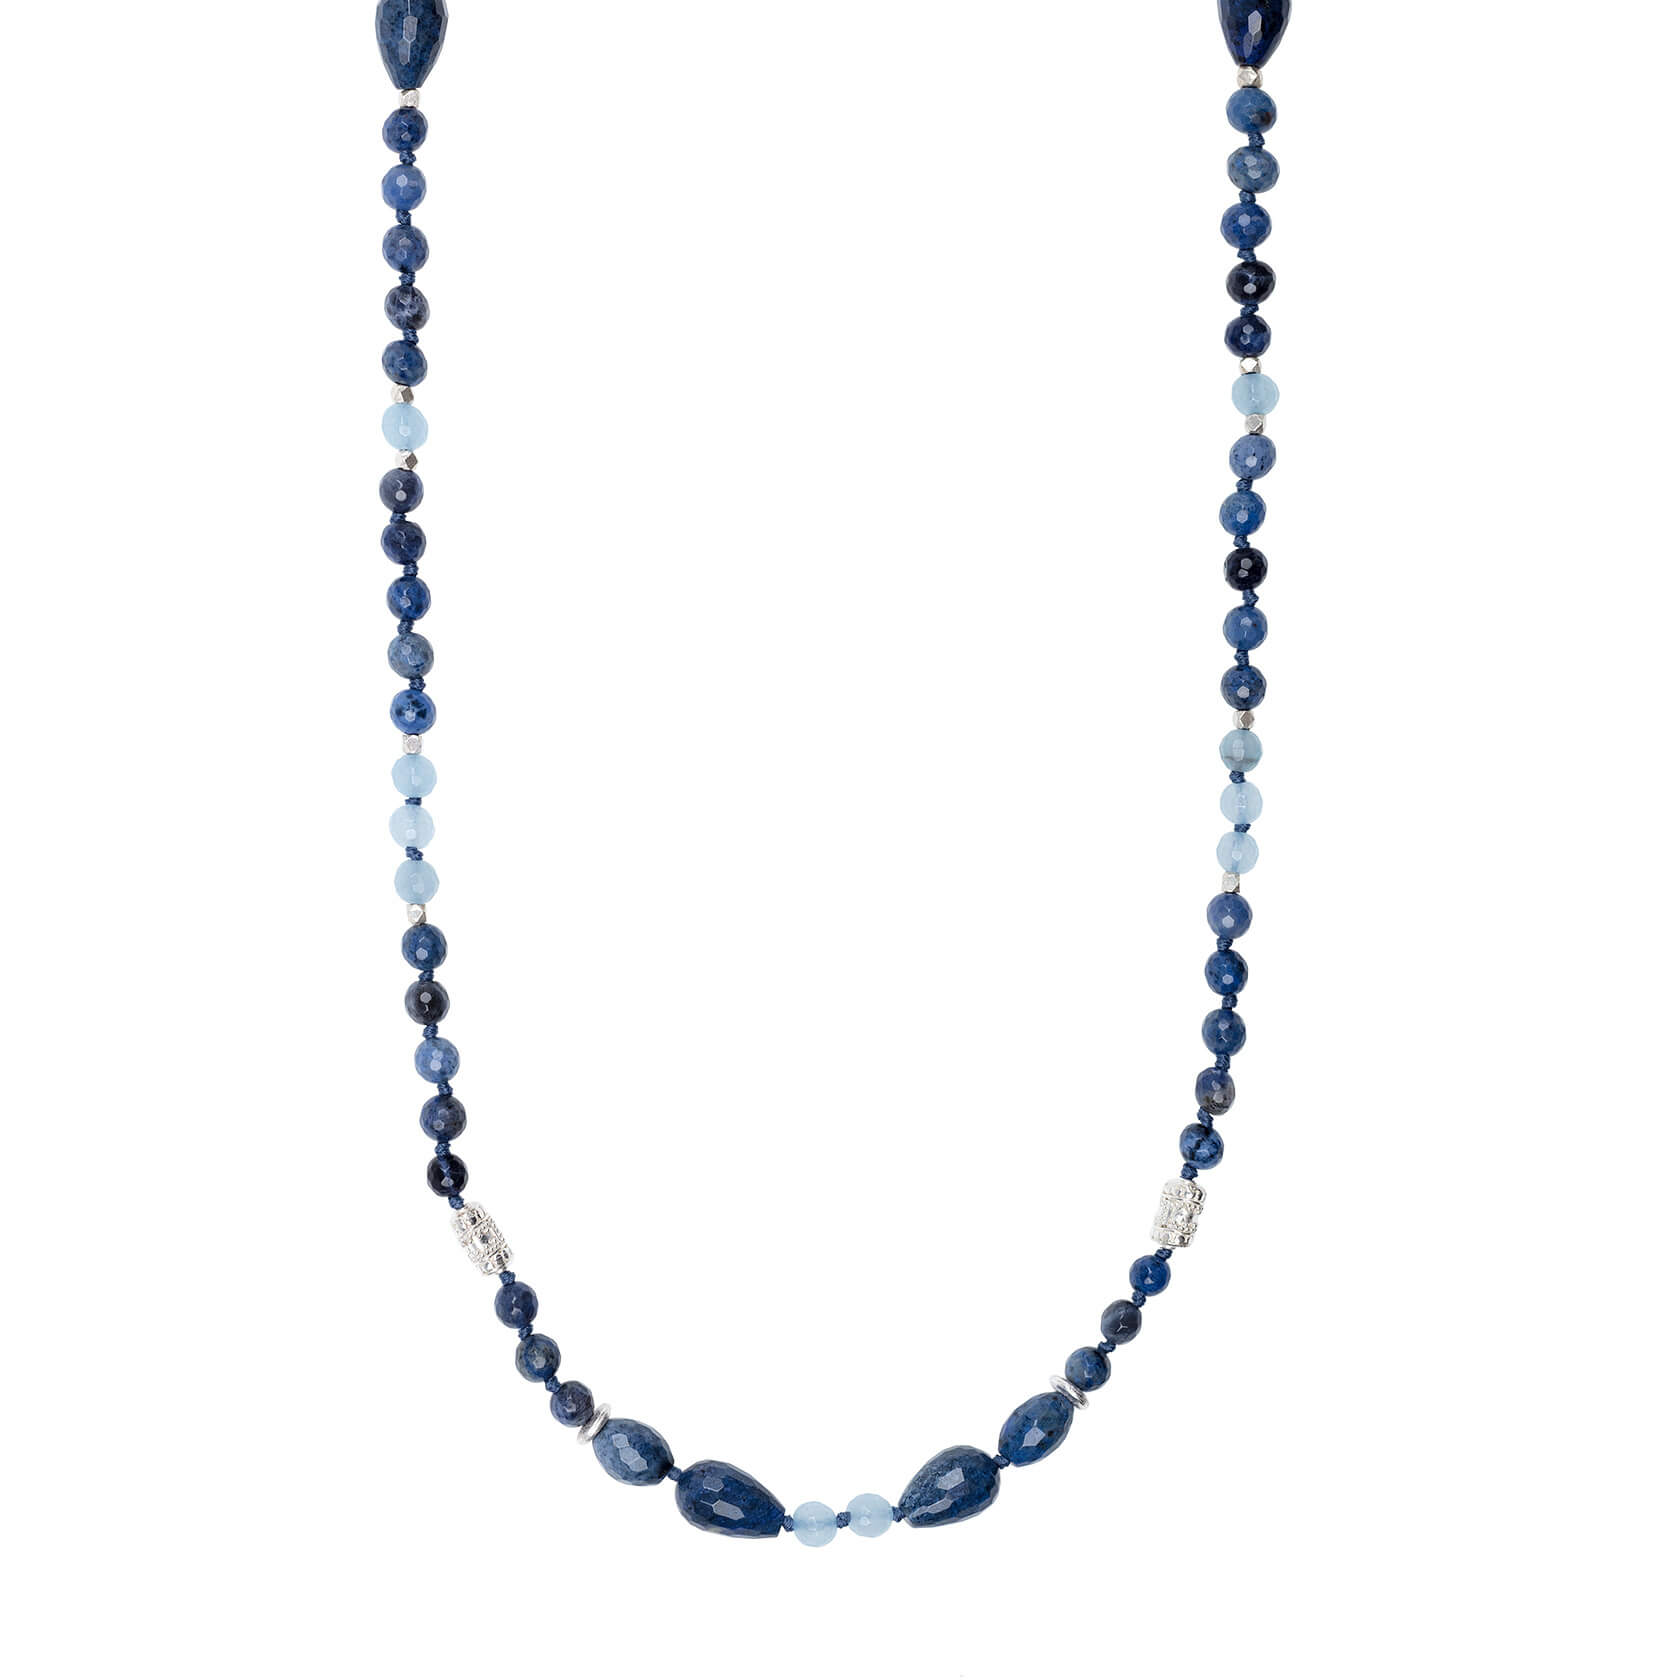 Sodalite long necklace